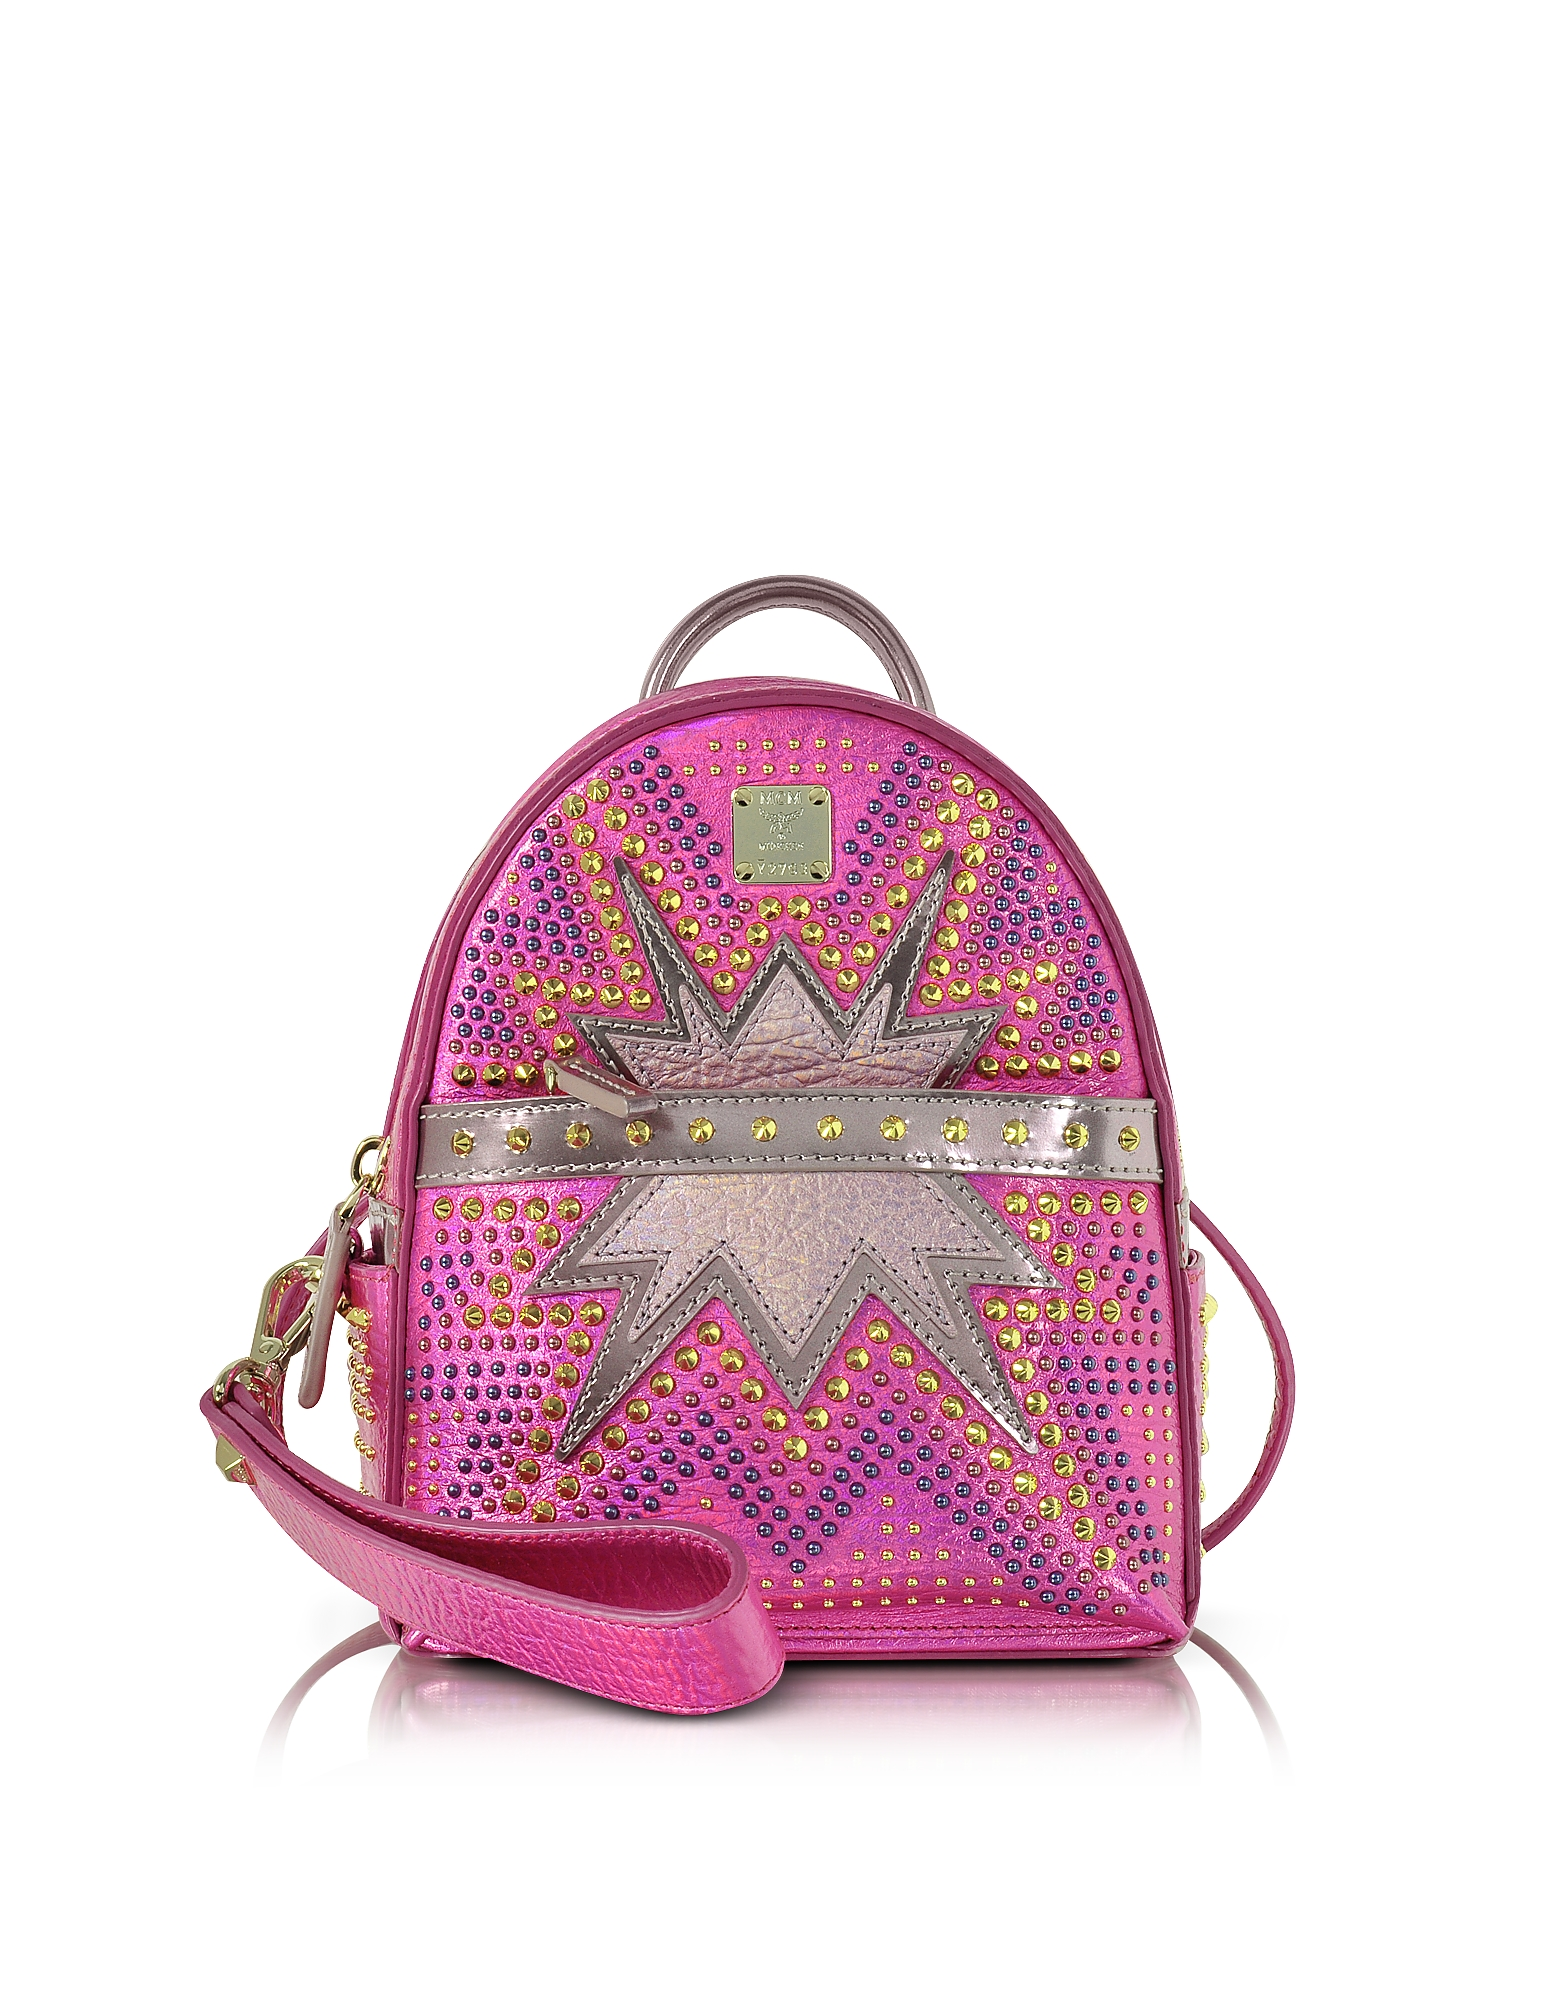 MCM Handbags, Electric Pink Stark Cyber Studs XMN Backpack